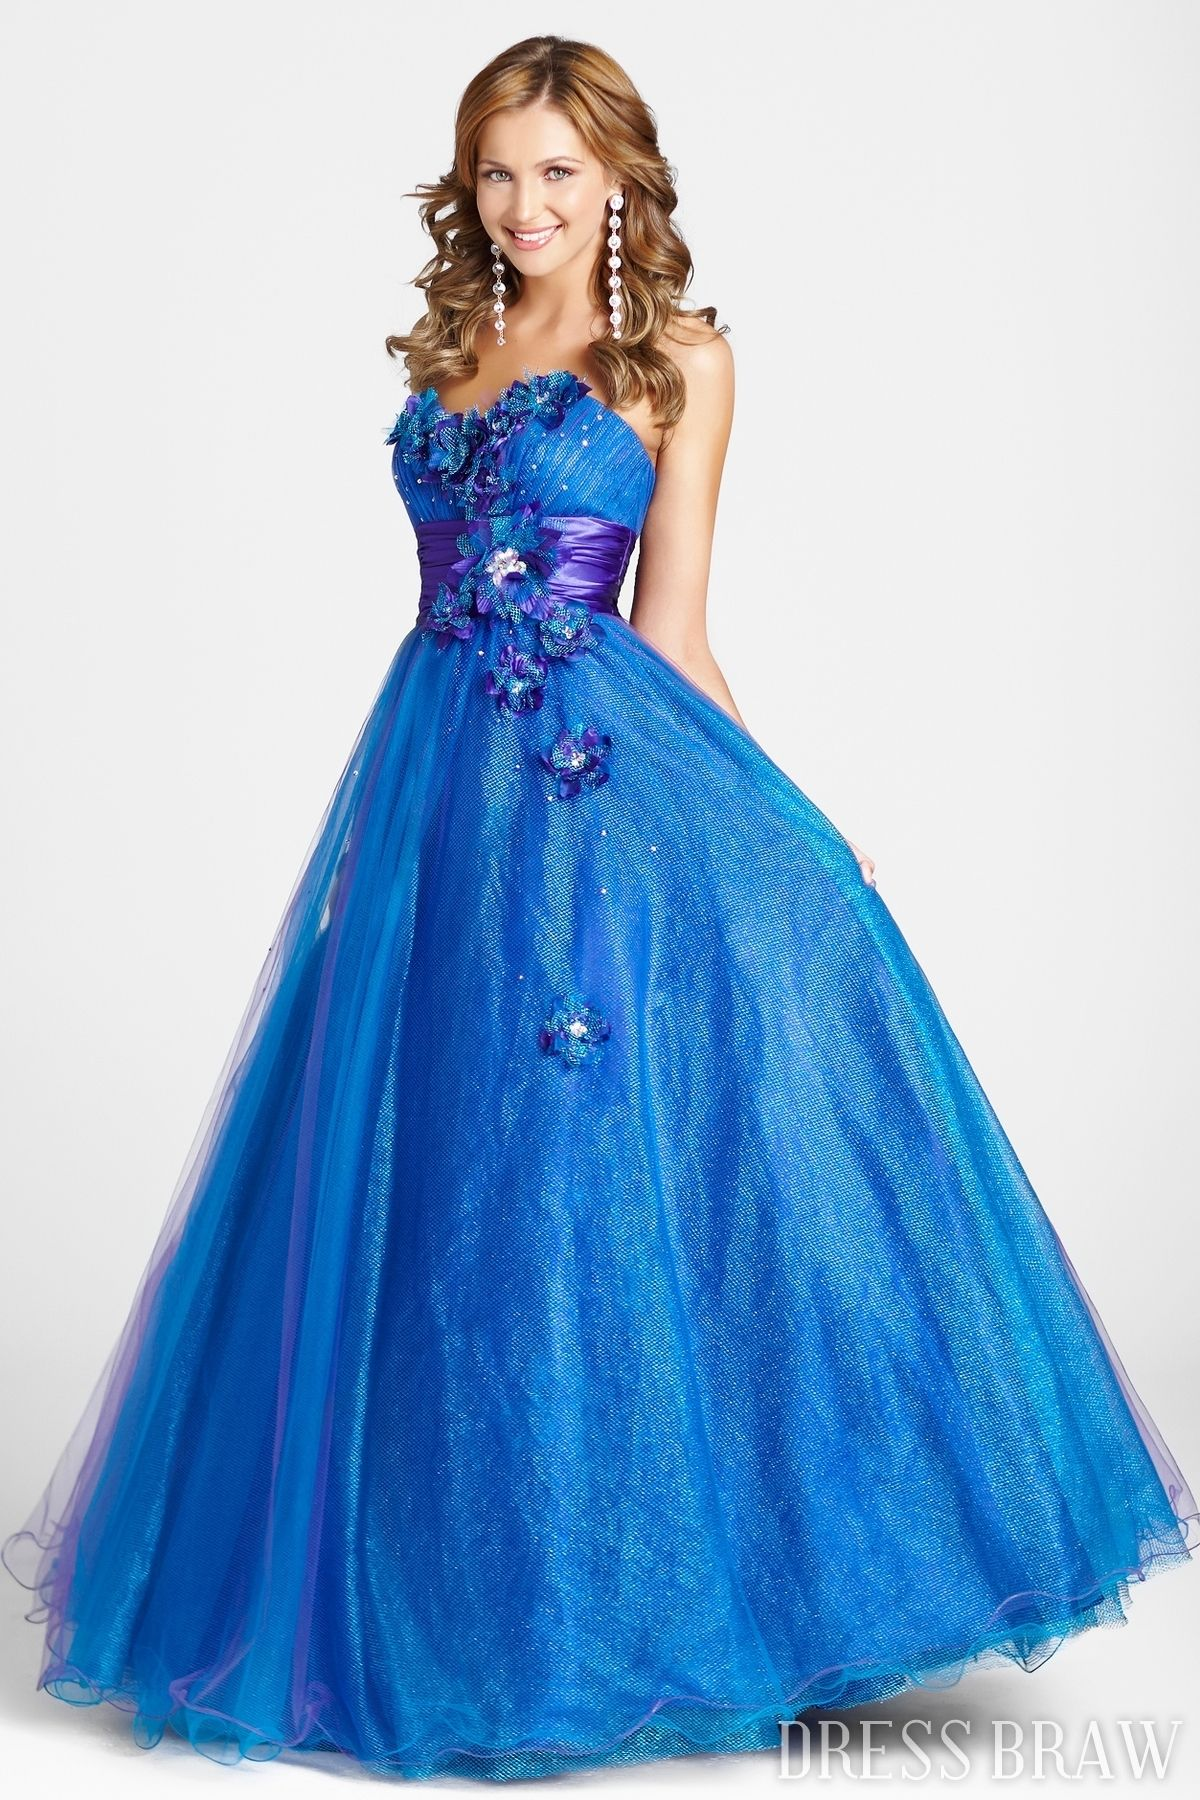 Sexy sweetheart floorlength flowers dresses ball gowns